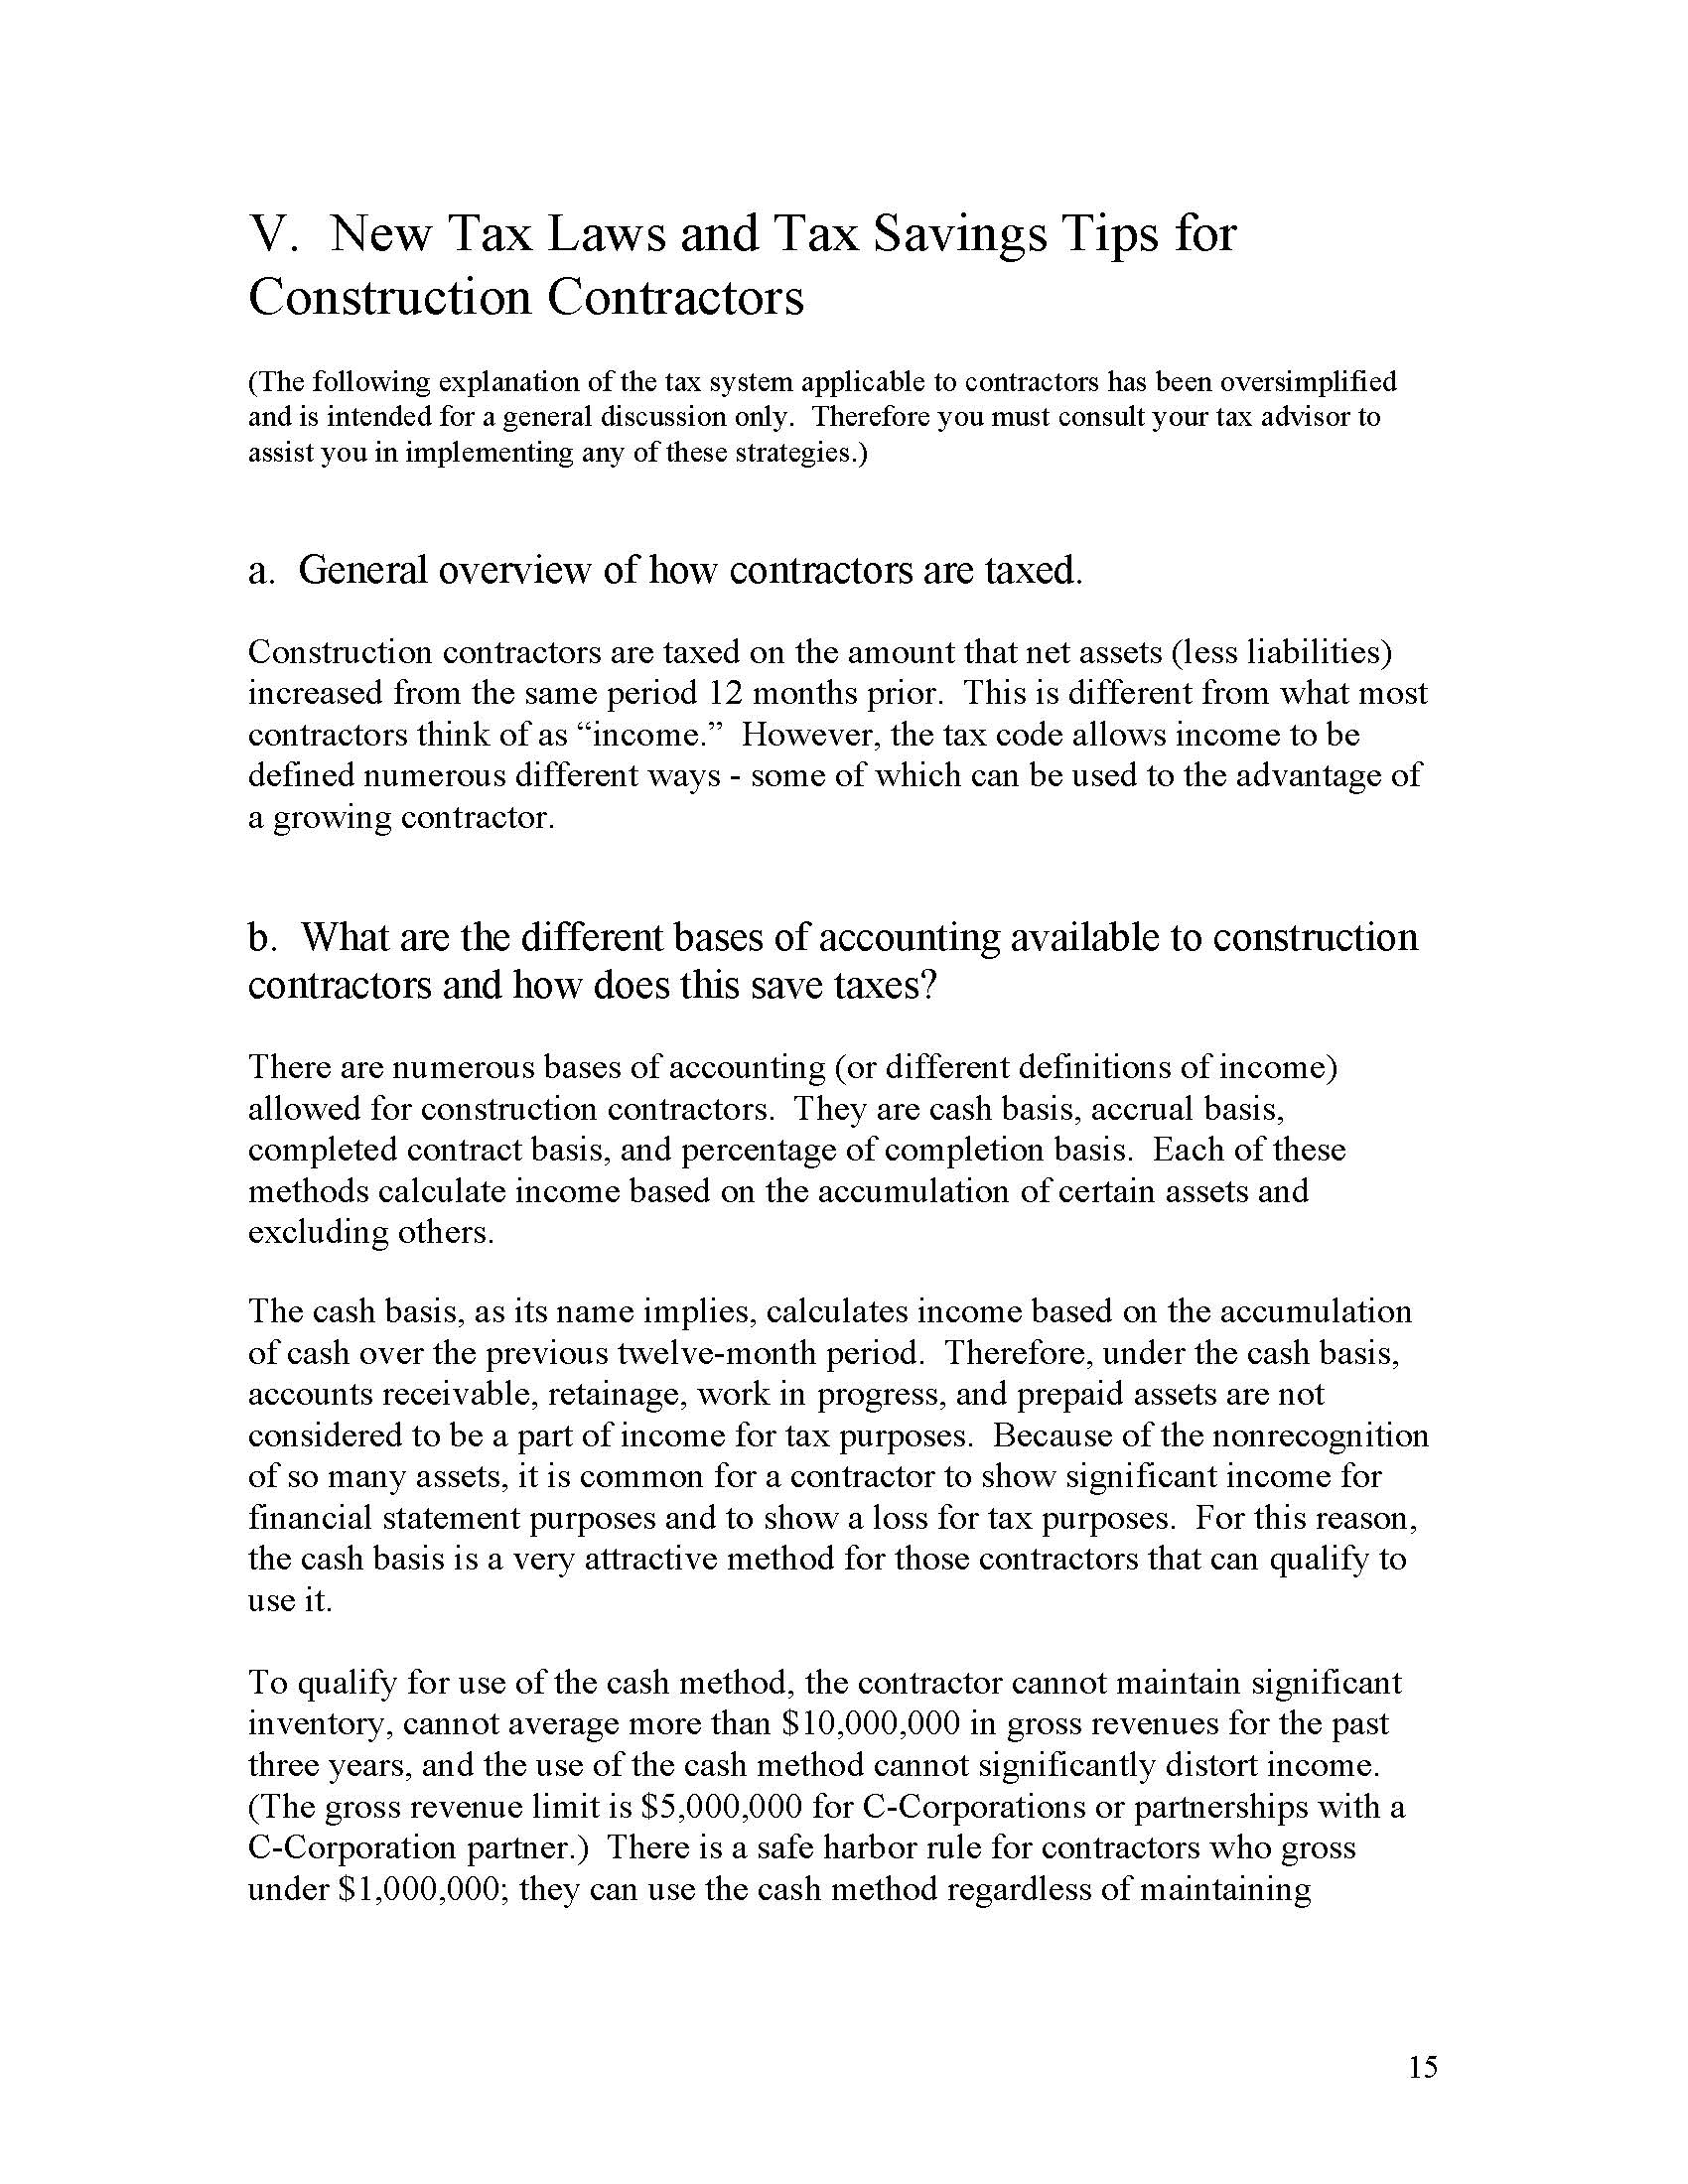 construction-business-structure-how-to-protect-your-equity_Page_15.jpg